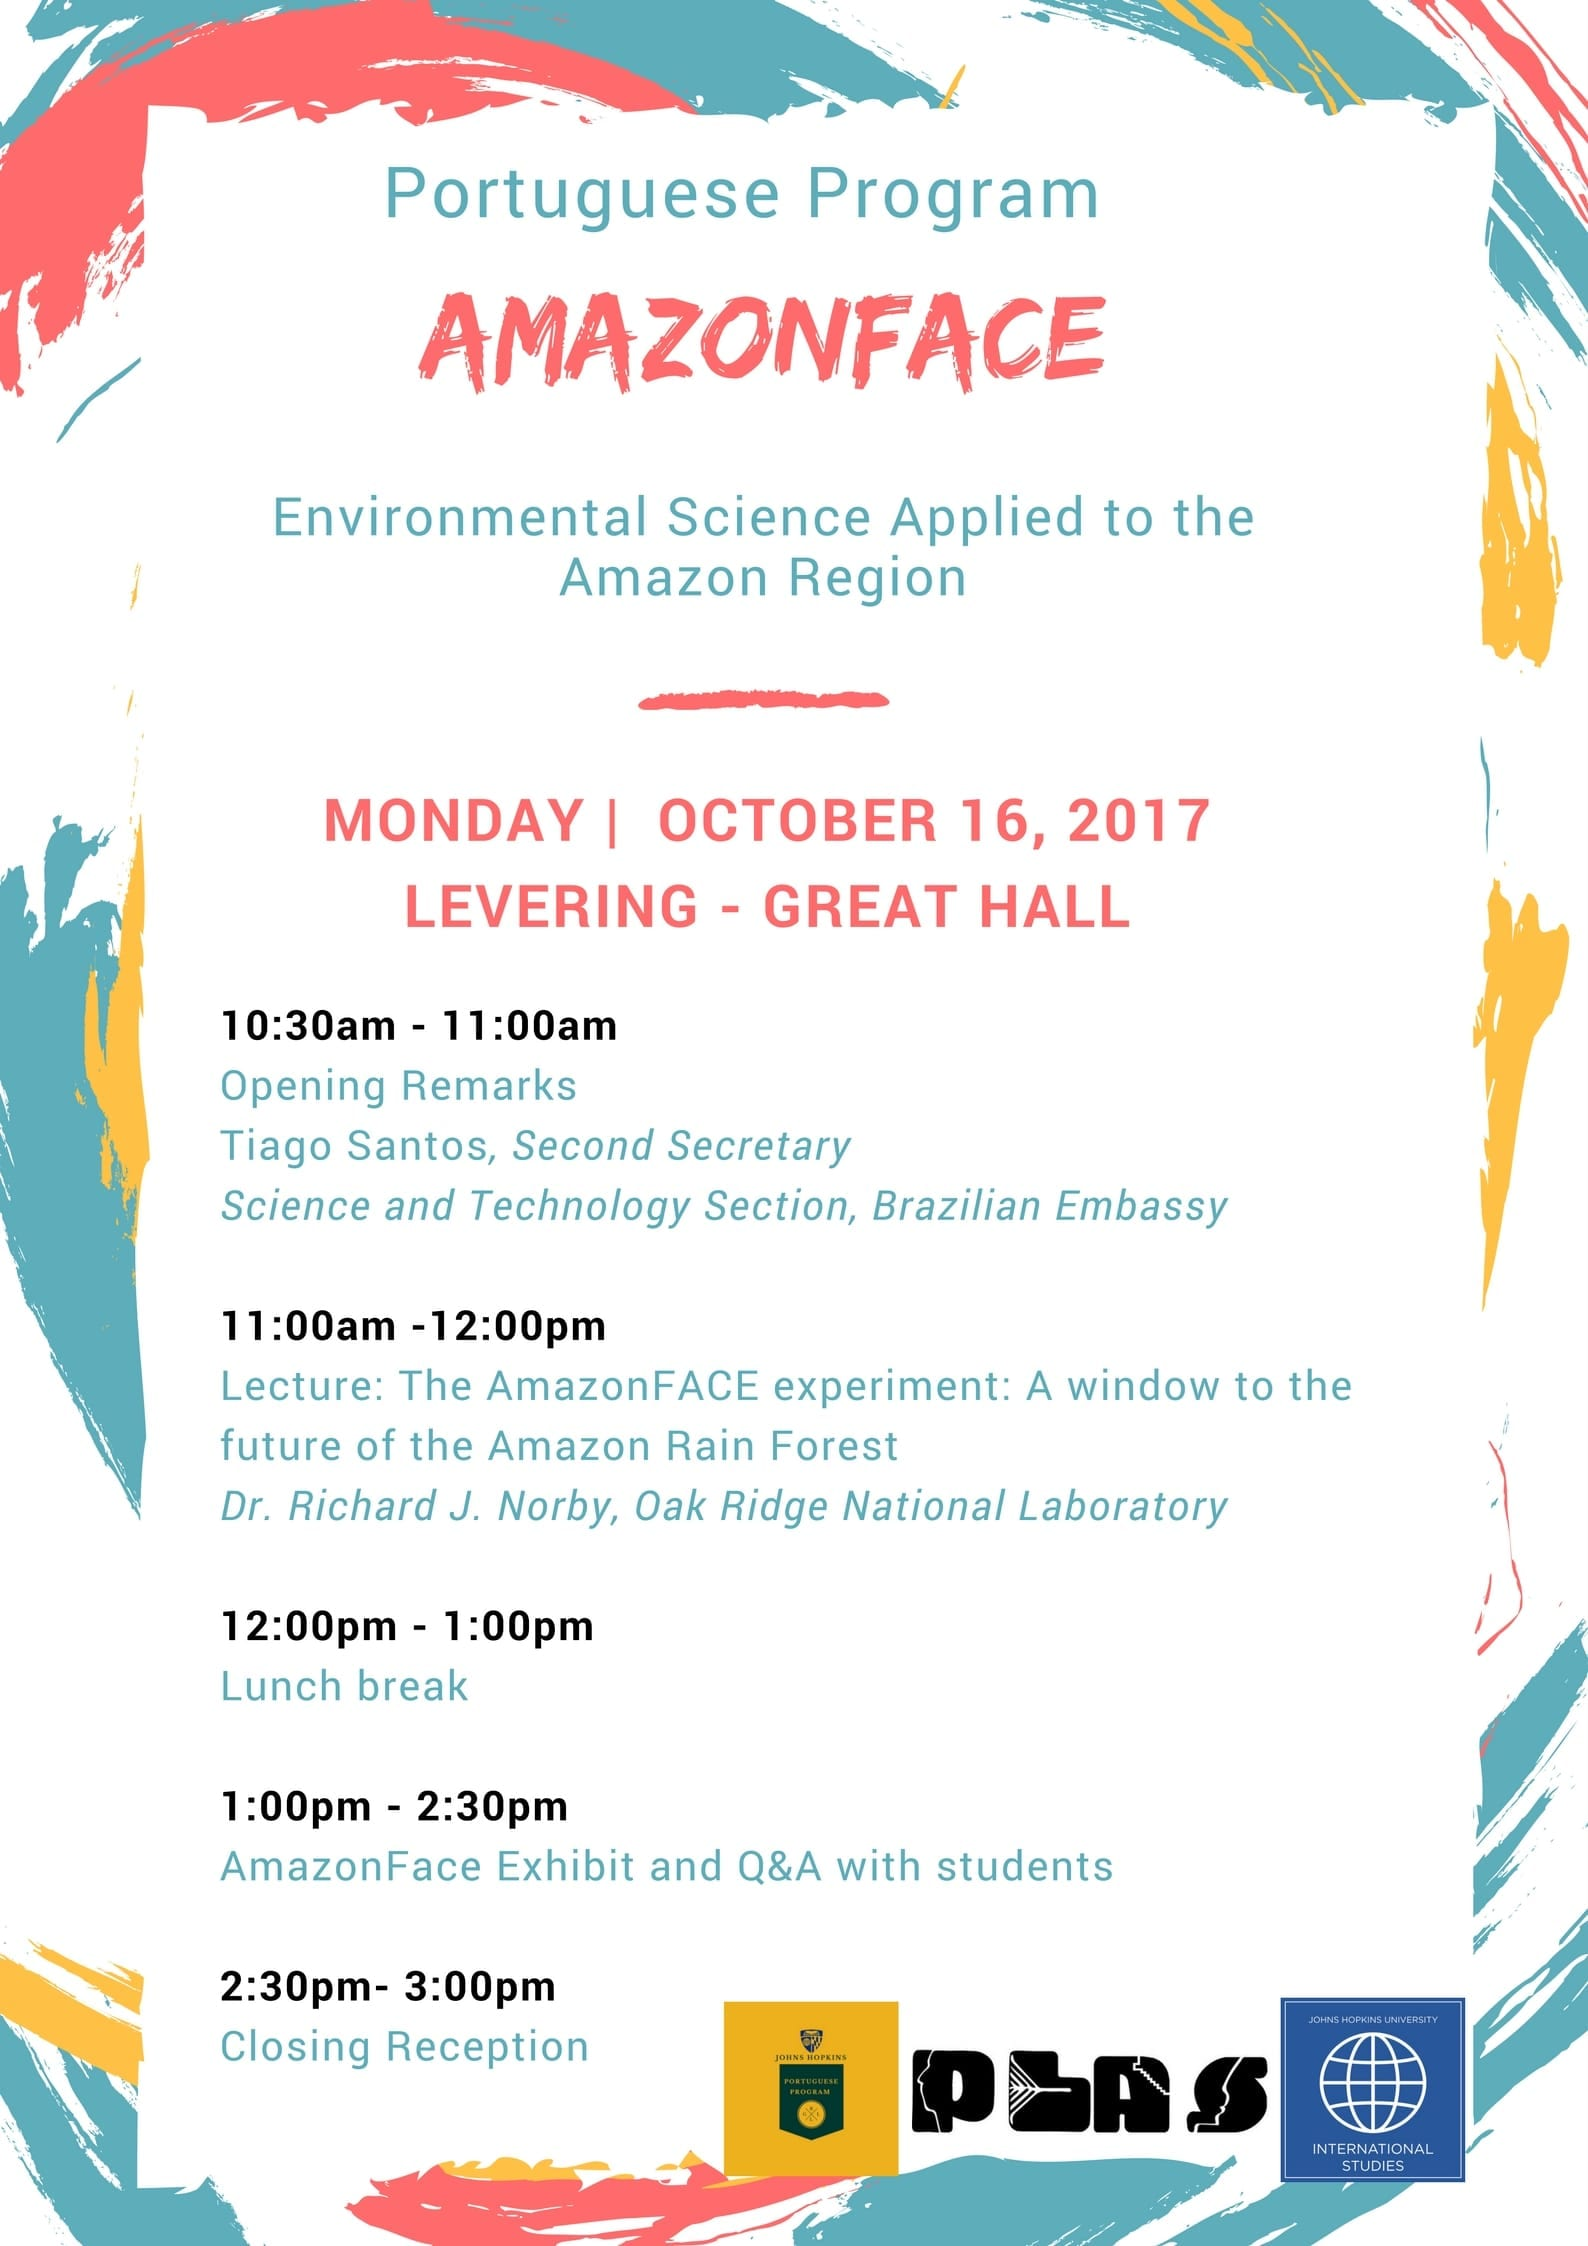 Upcoming Lecture, The AmazonFACE Experiment